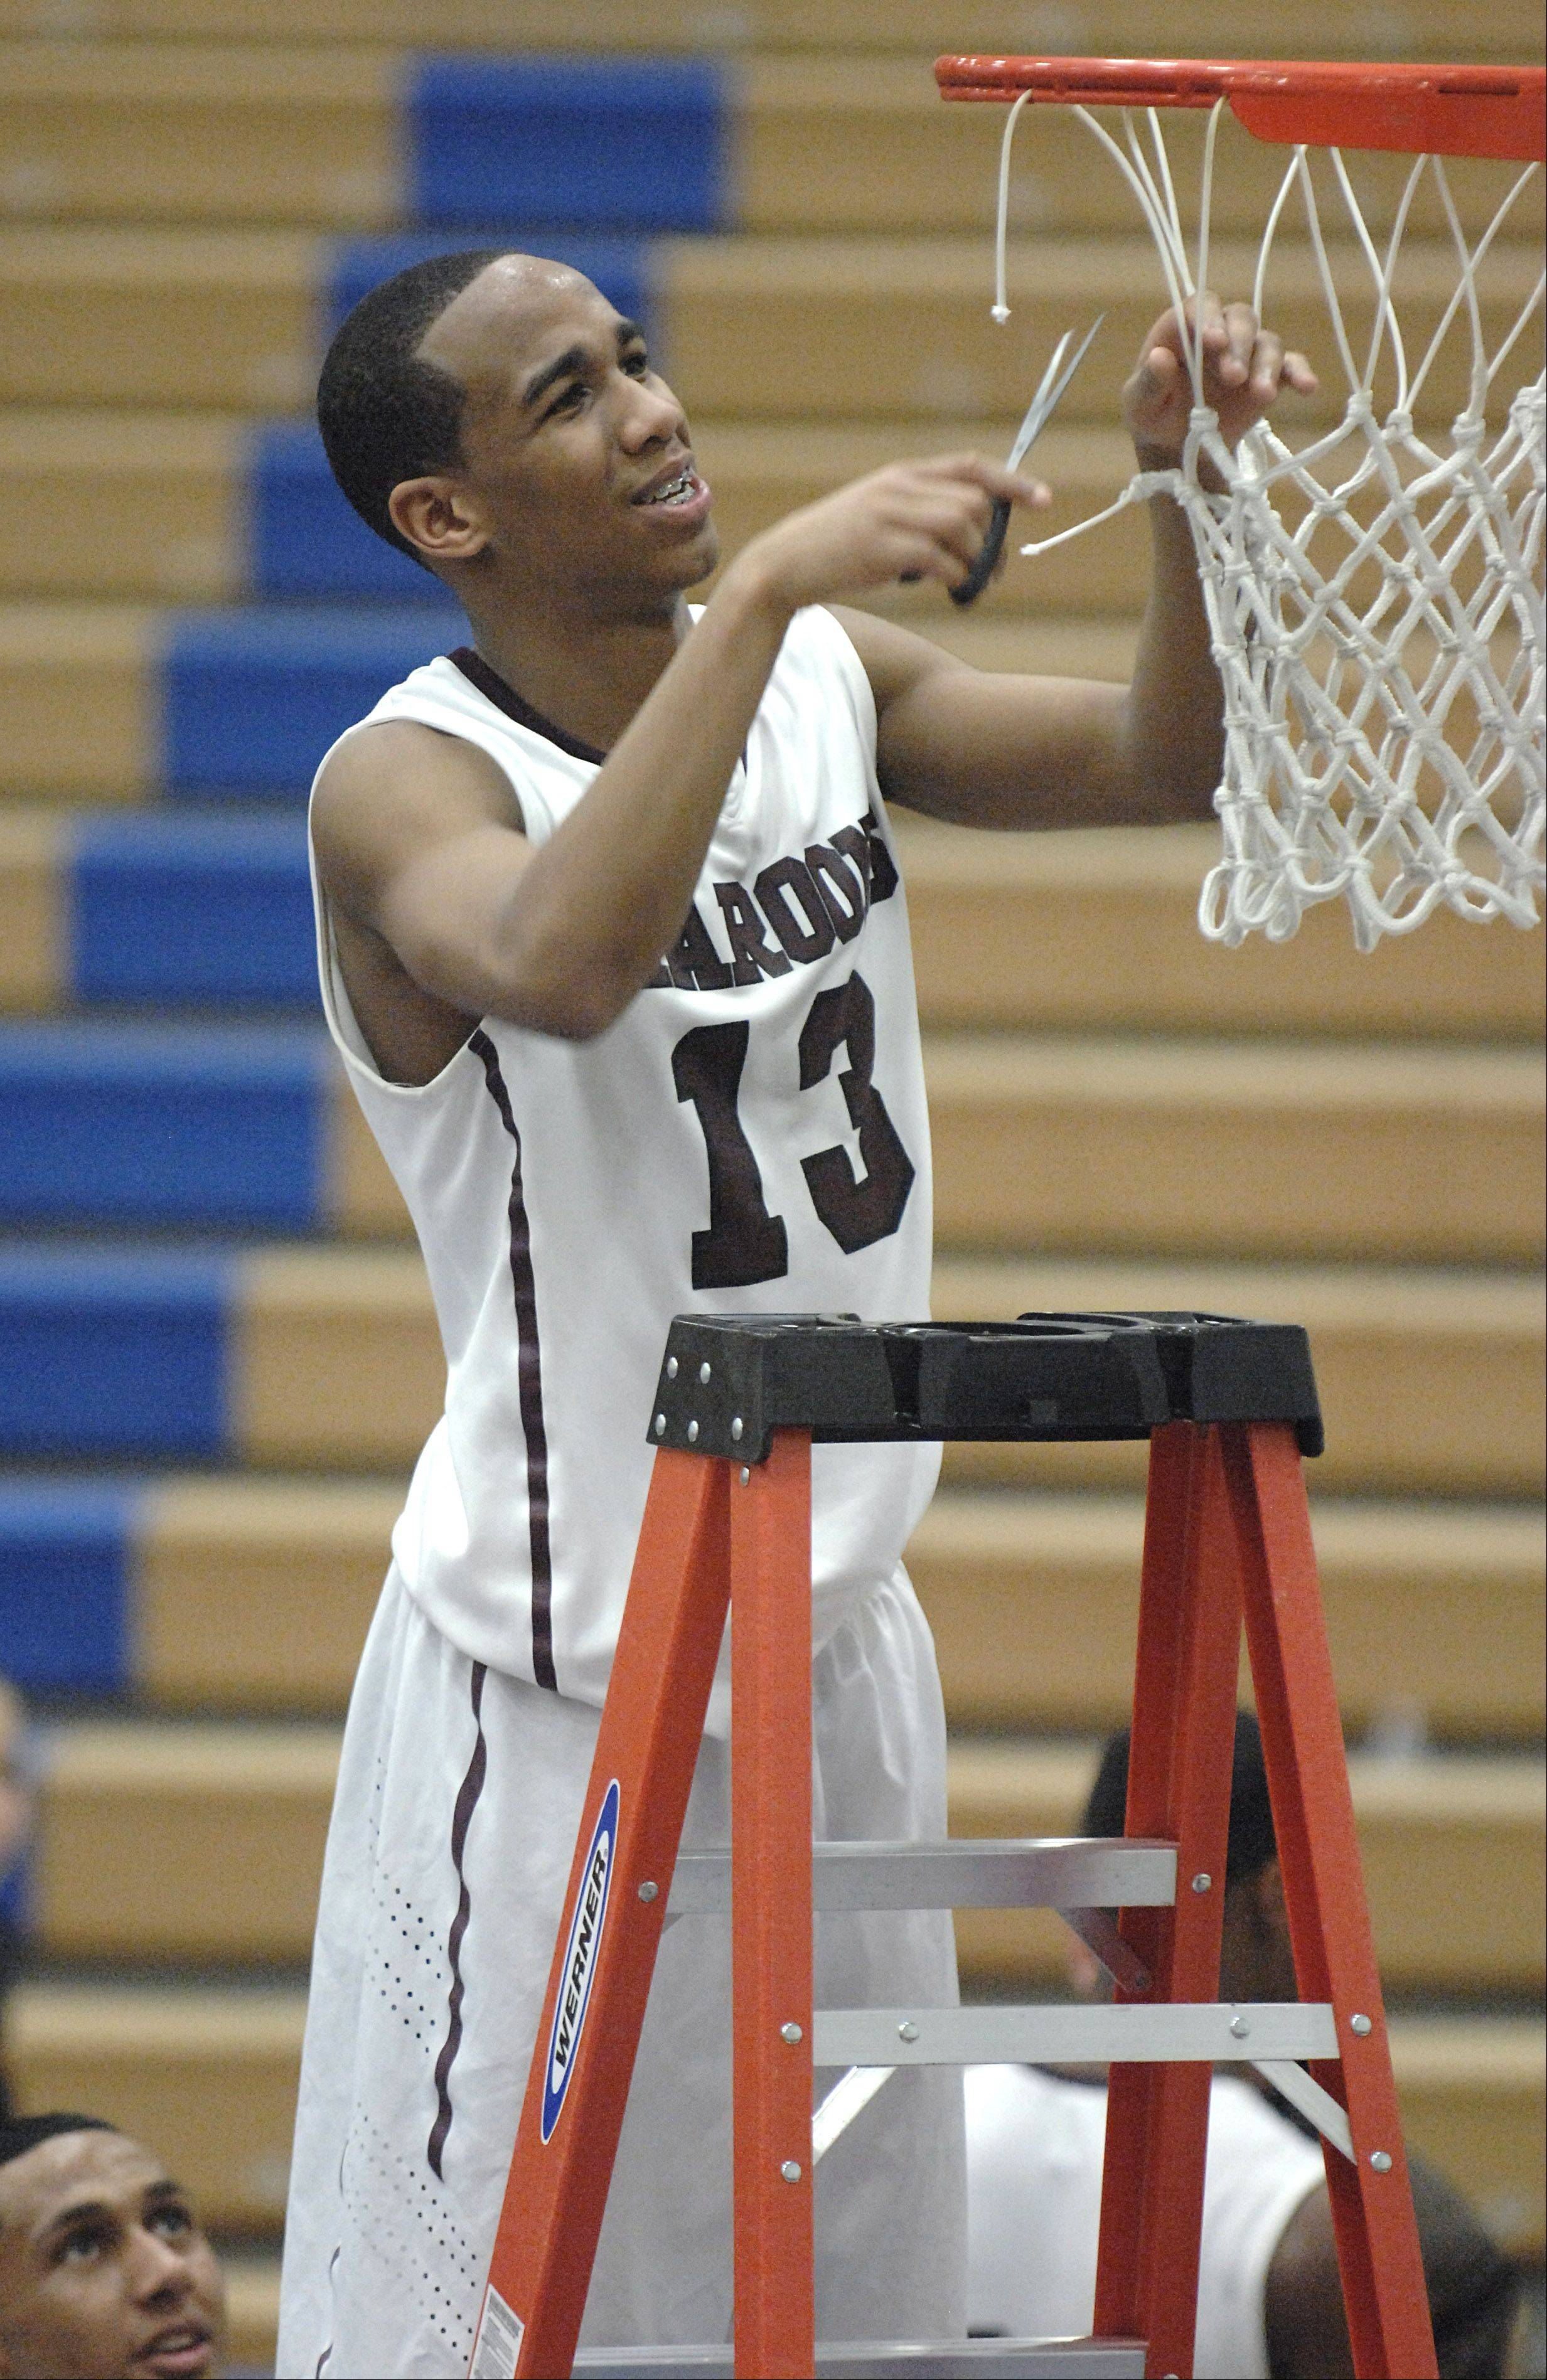 Elgin's Cortez Scott approached the basket smiling the entire time as he cut down a piece of the net after their 4A regional championship win.